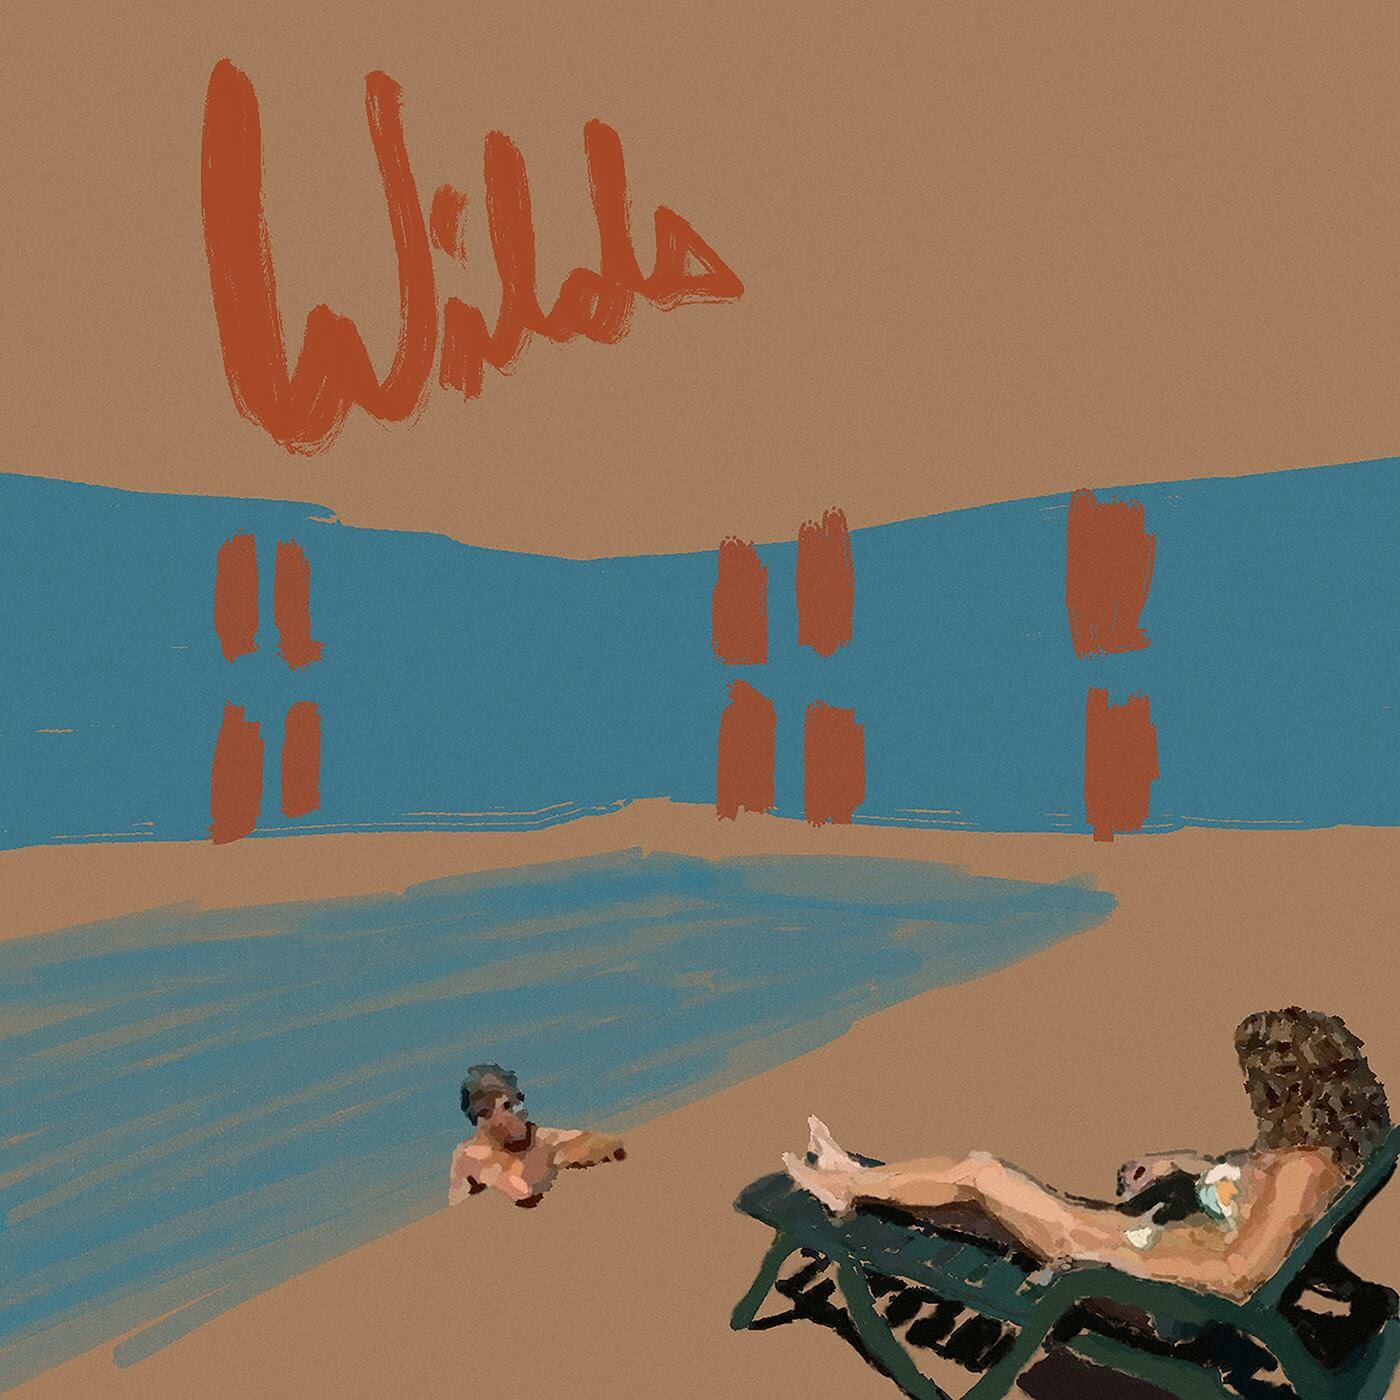 Wilds by Andy Shauf album review by Greg Rogers. The singer/songwriters forthcoming release, drops on September 24, via Anti-/Arts & Crafts